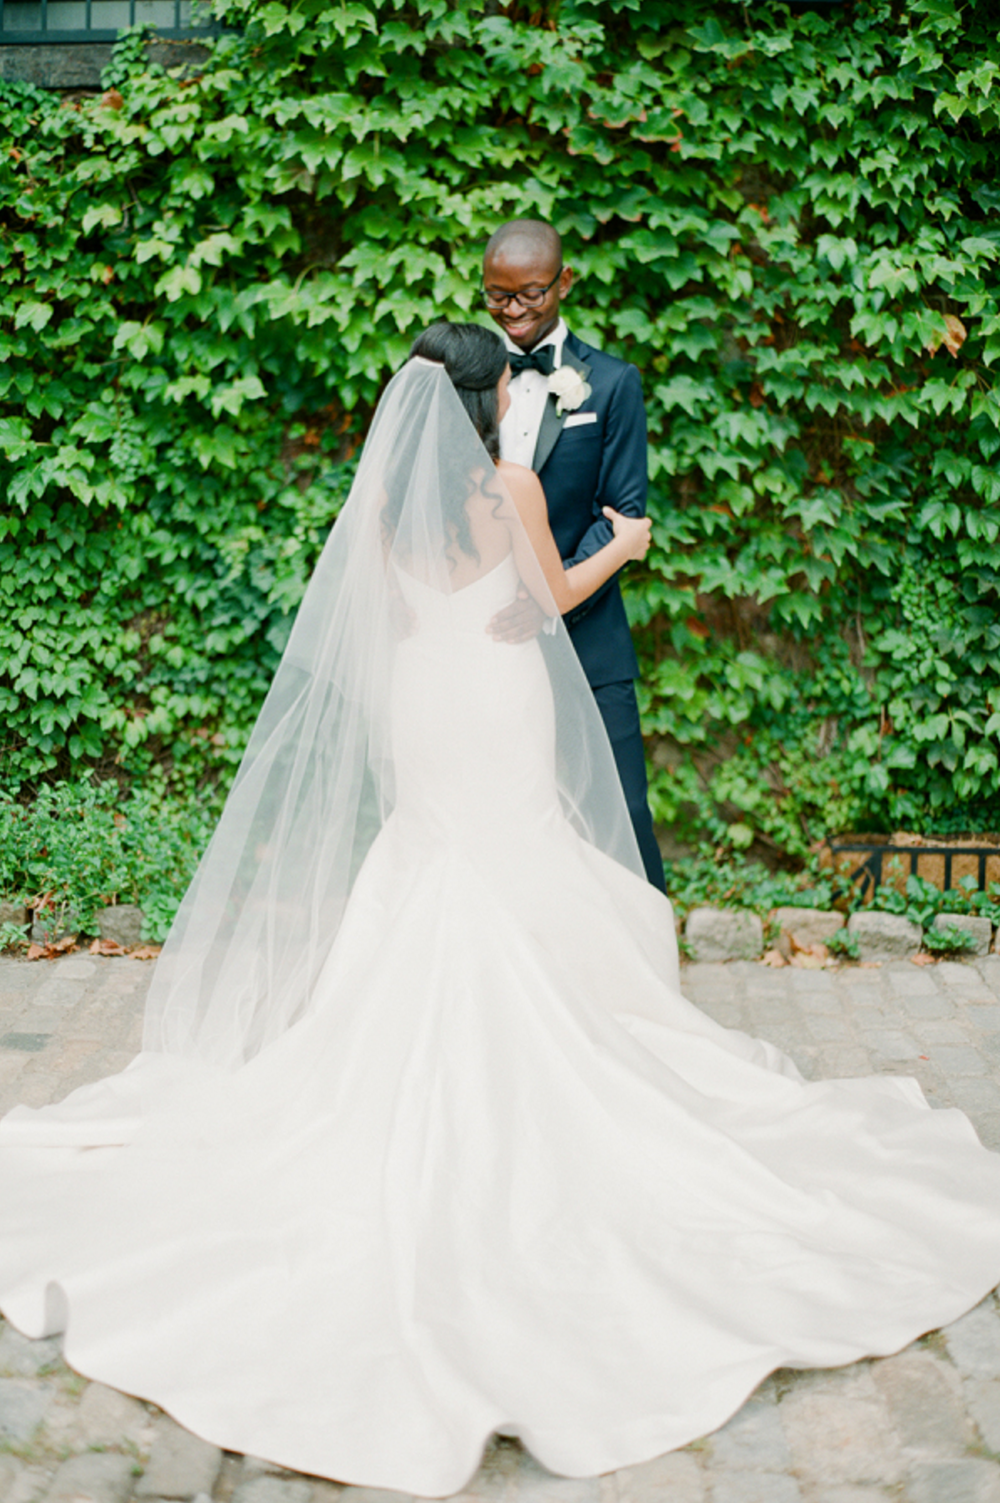 Carol+Hannah+Bridal+Tourmaline+Gown+at+The+Foundry+19.png